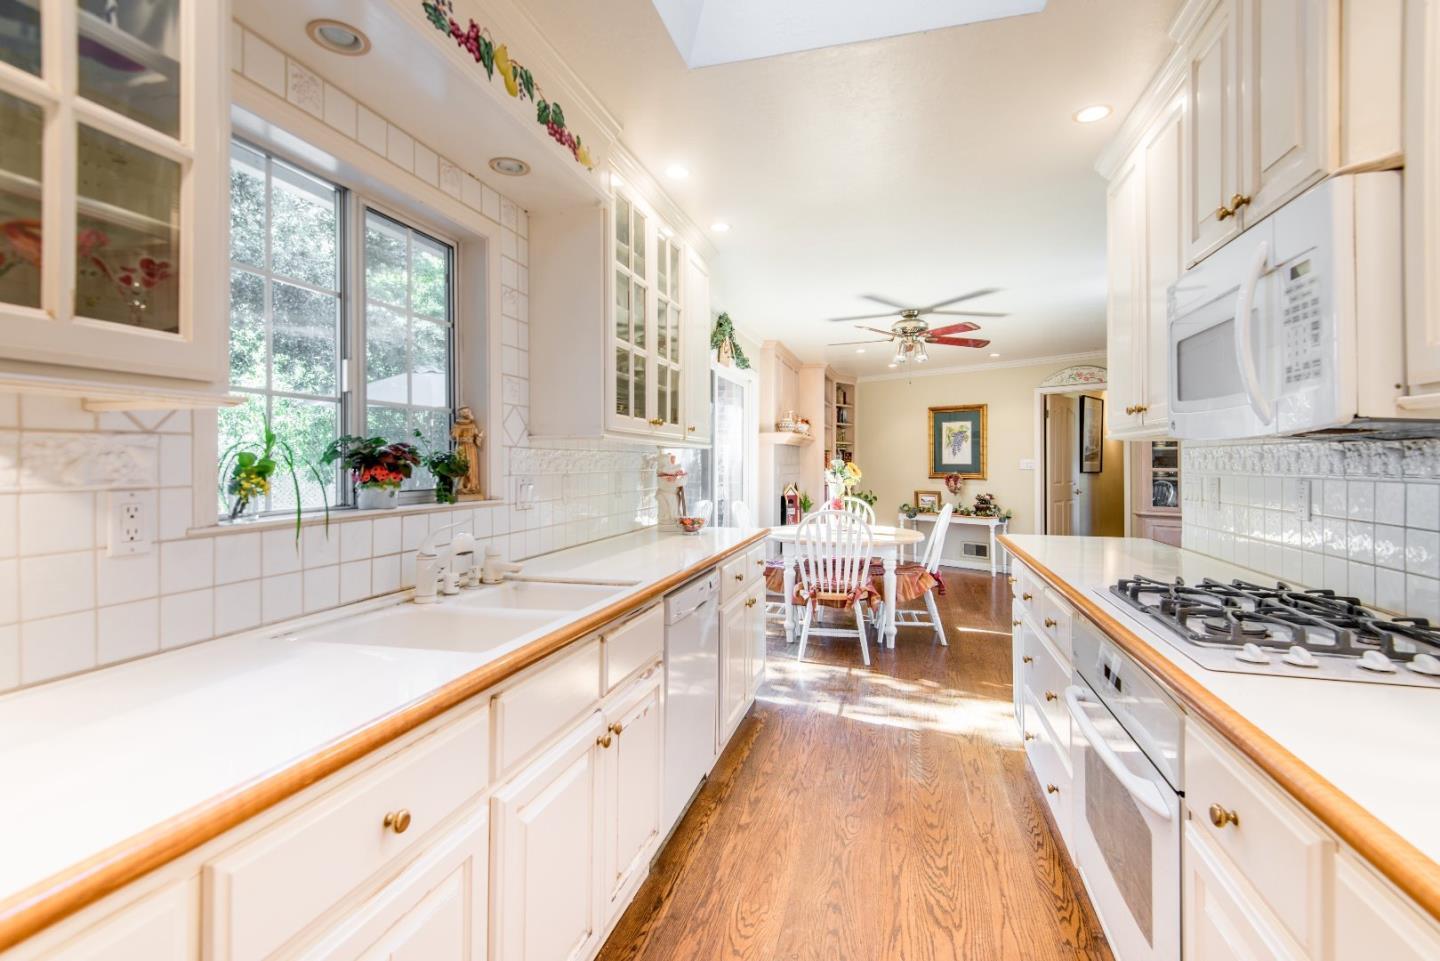 Additional photo for property listing at 18960 Greenbrook Ct  SARATOGA, CALIFORNIA 95070